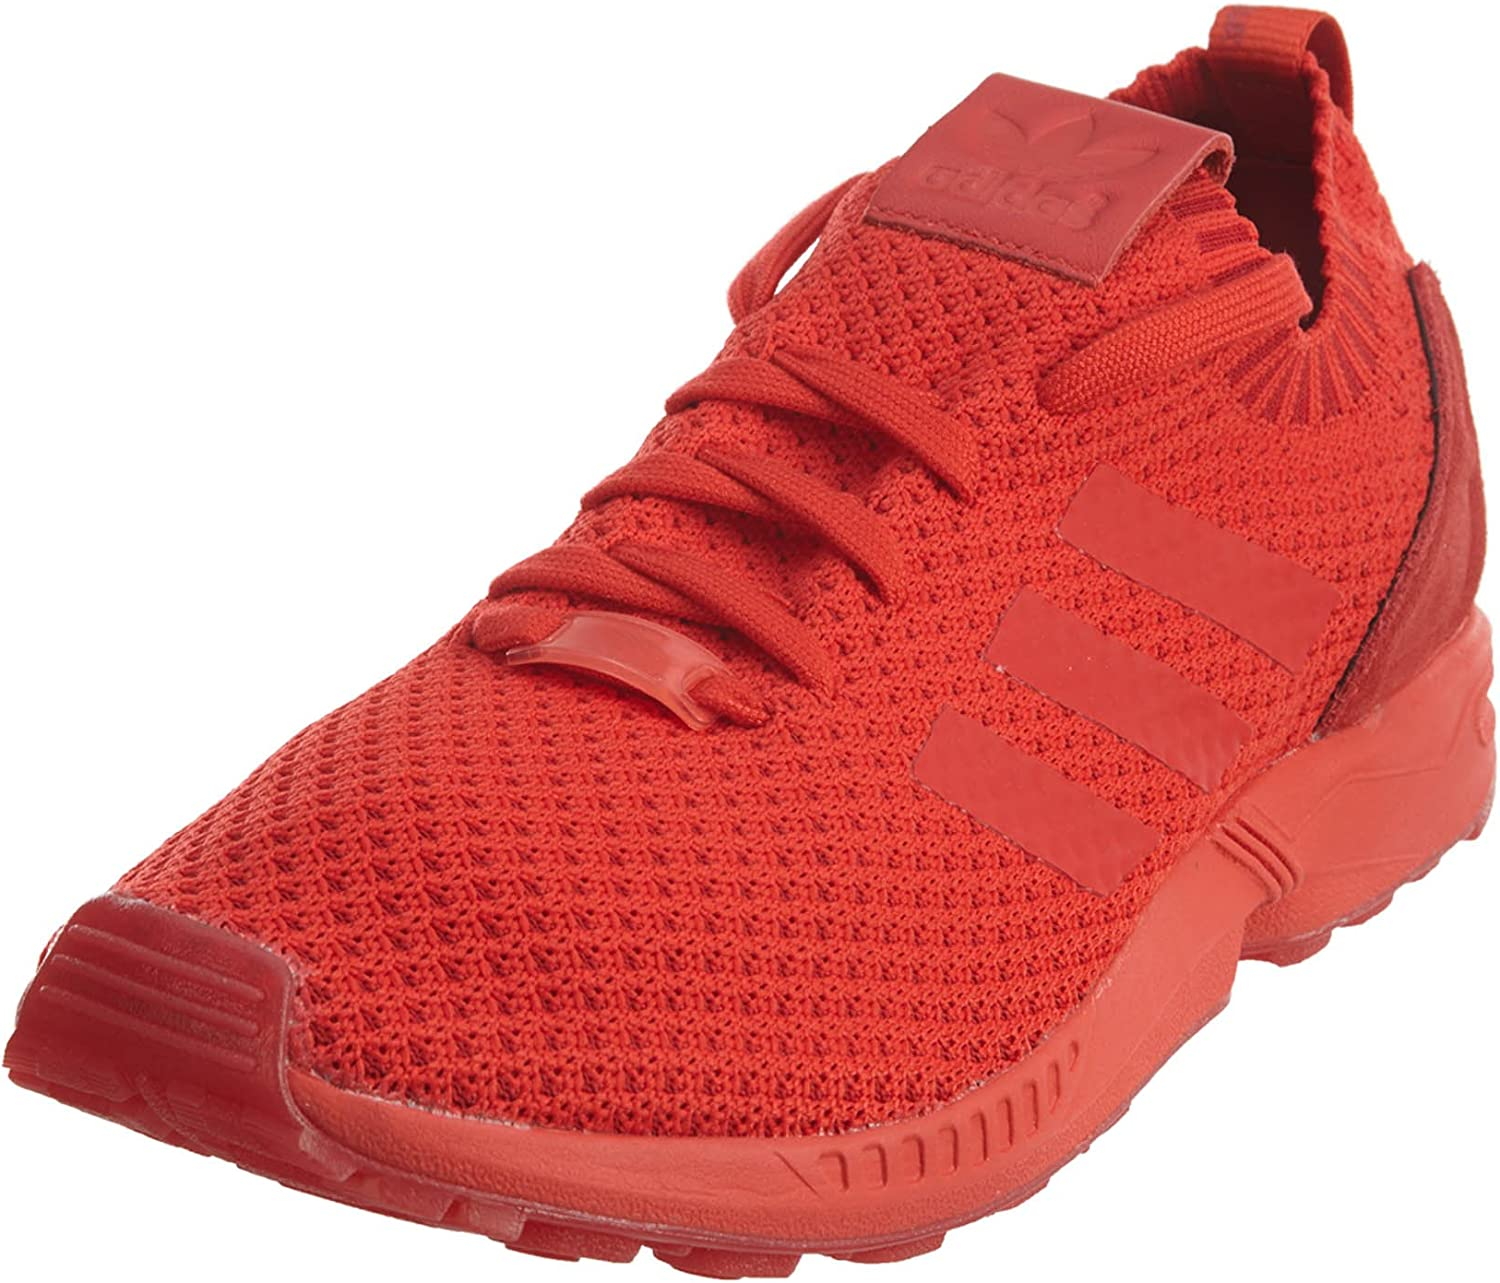 Adidas Zx Flux Pk Mens Style  S76497Red Red Size  13 M US